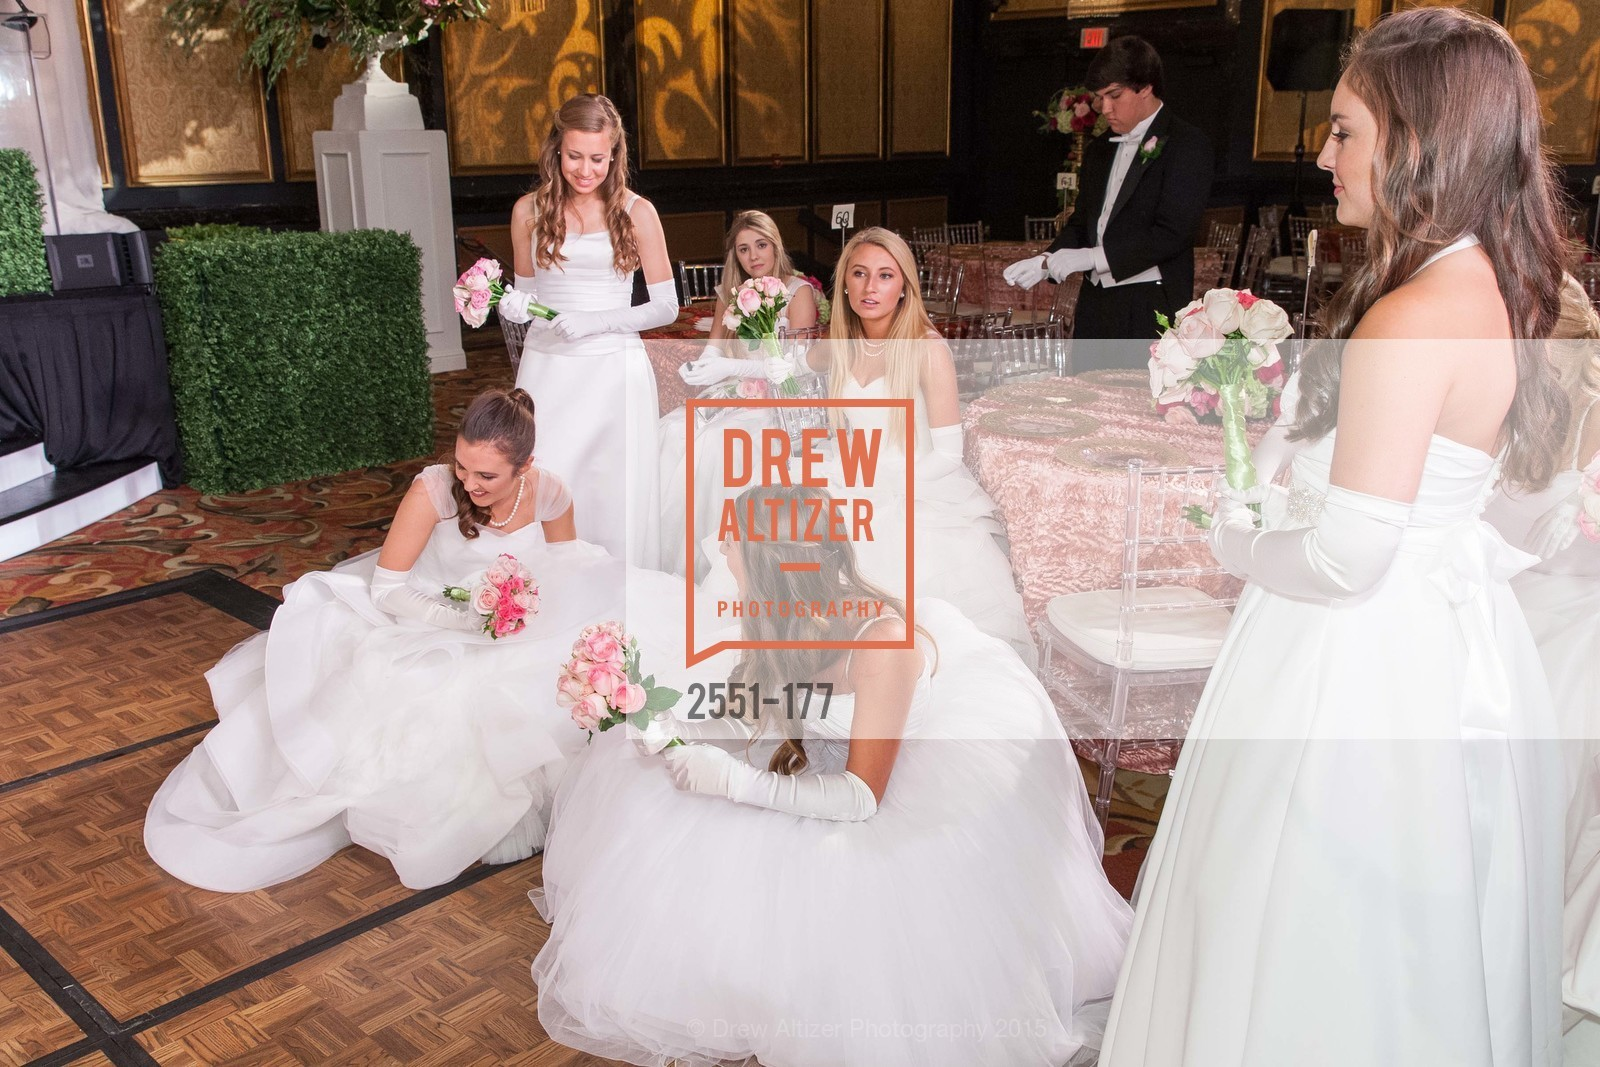 Jennifer Hannah Baylis, Sarah Elisabeth Jackmauh, Julia Marley Chenette, Mary Elizabeth Grinnell, The 2015 San Francisco Debutante Ball, The Westin St. Francis San Francisco Union Square. 335 Powell St, June 20th, 2015,Drew Altizer, Drew Altizer Photography, full-service agency, private events, San Francisco photographer, photographer california